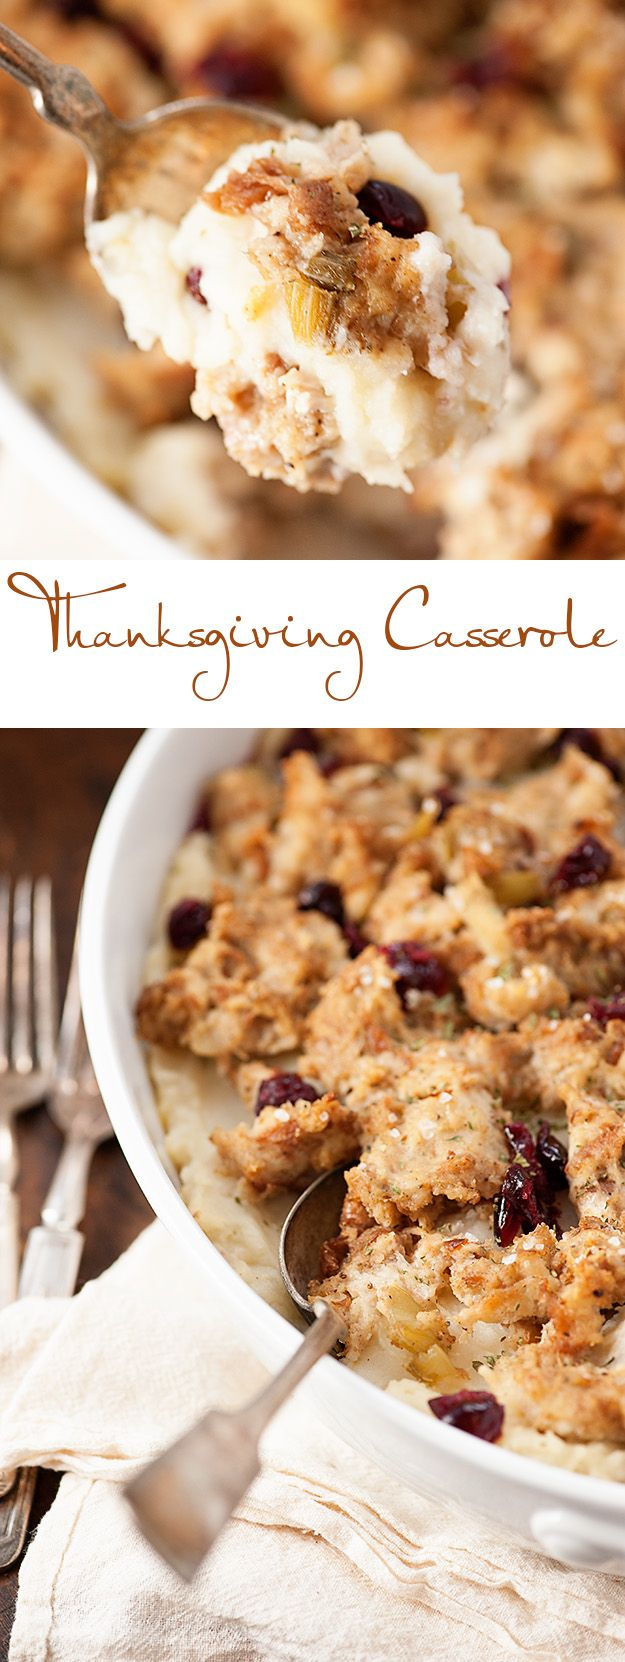 If you're out searching for recipes for leftover turkey, I have you covered with this easy turkey casserole! It makes great use of all your Thanksgiving leftovers!   So, here we are. Just days before